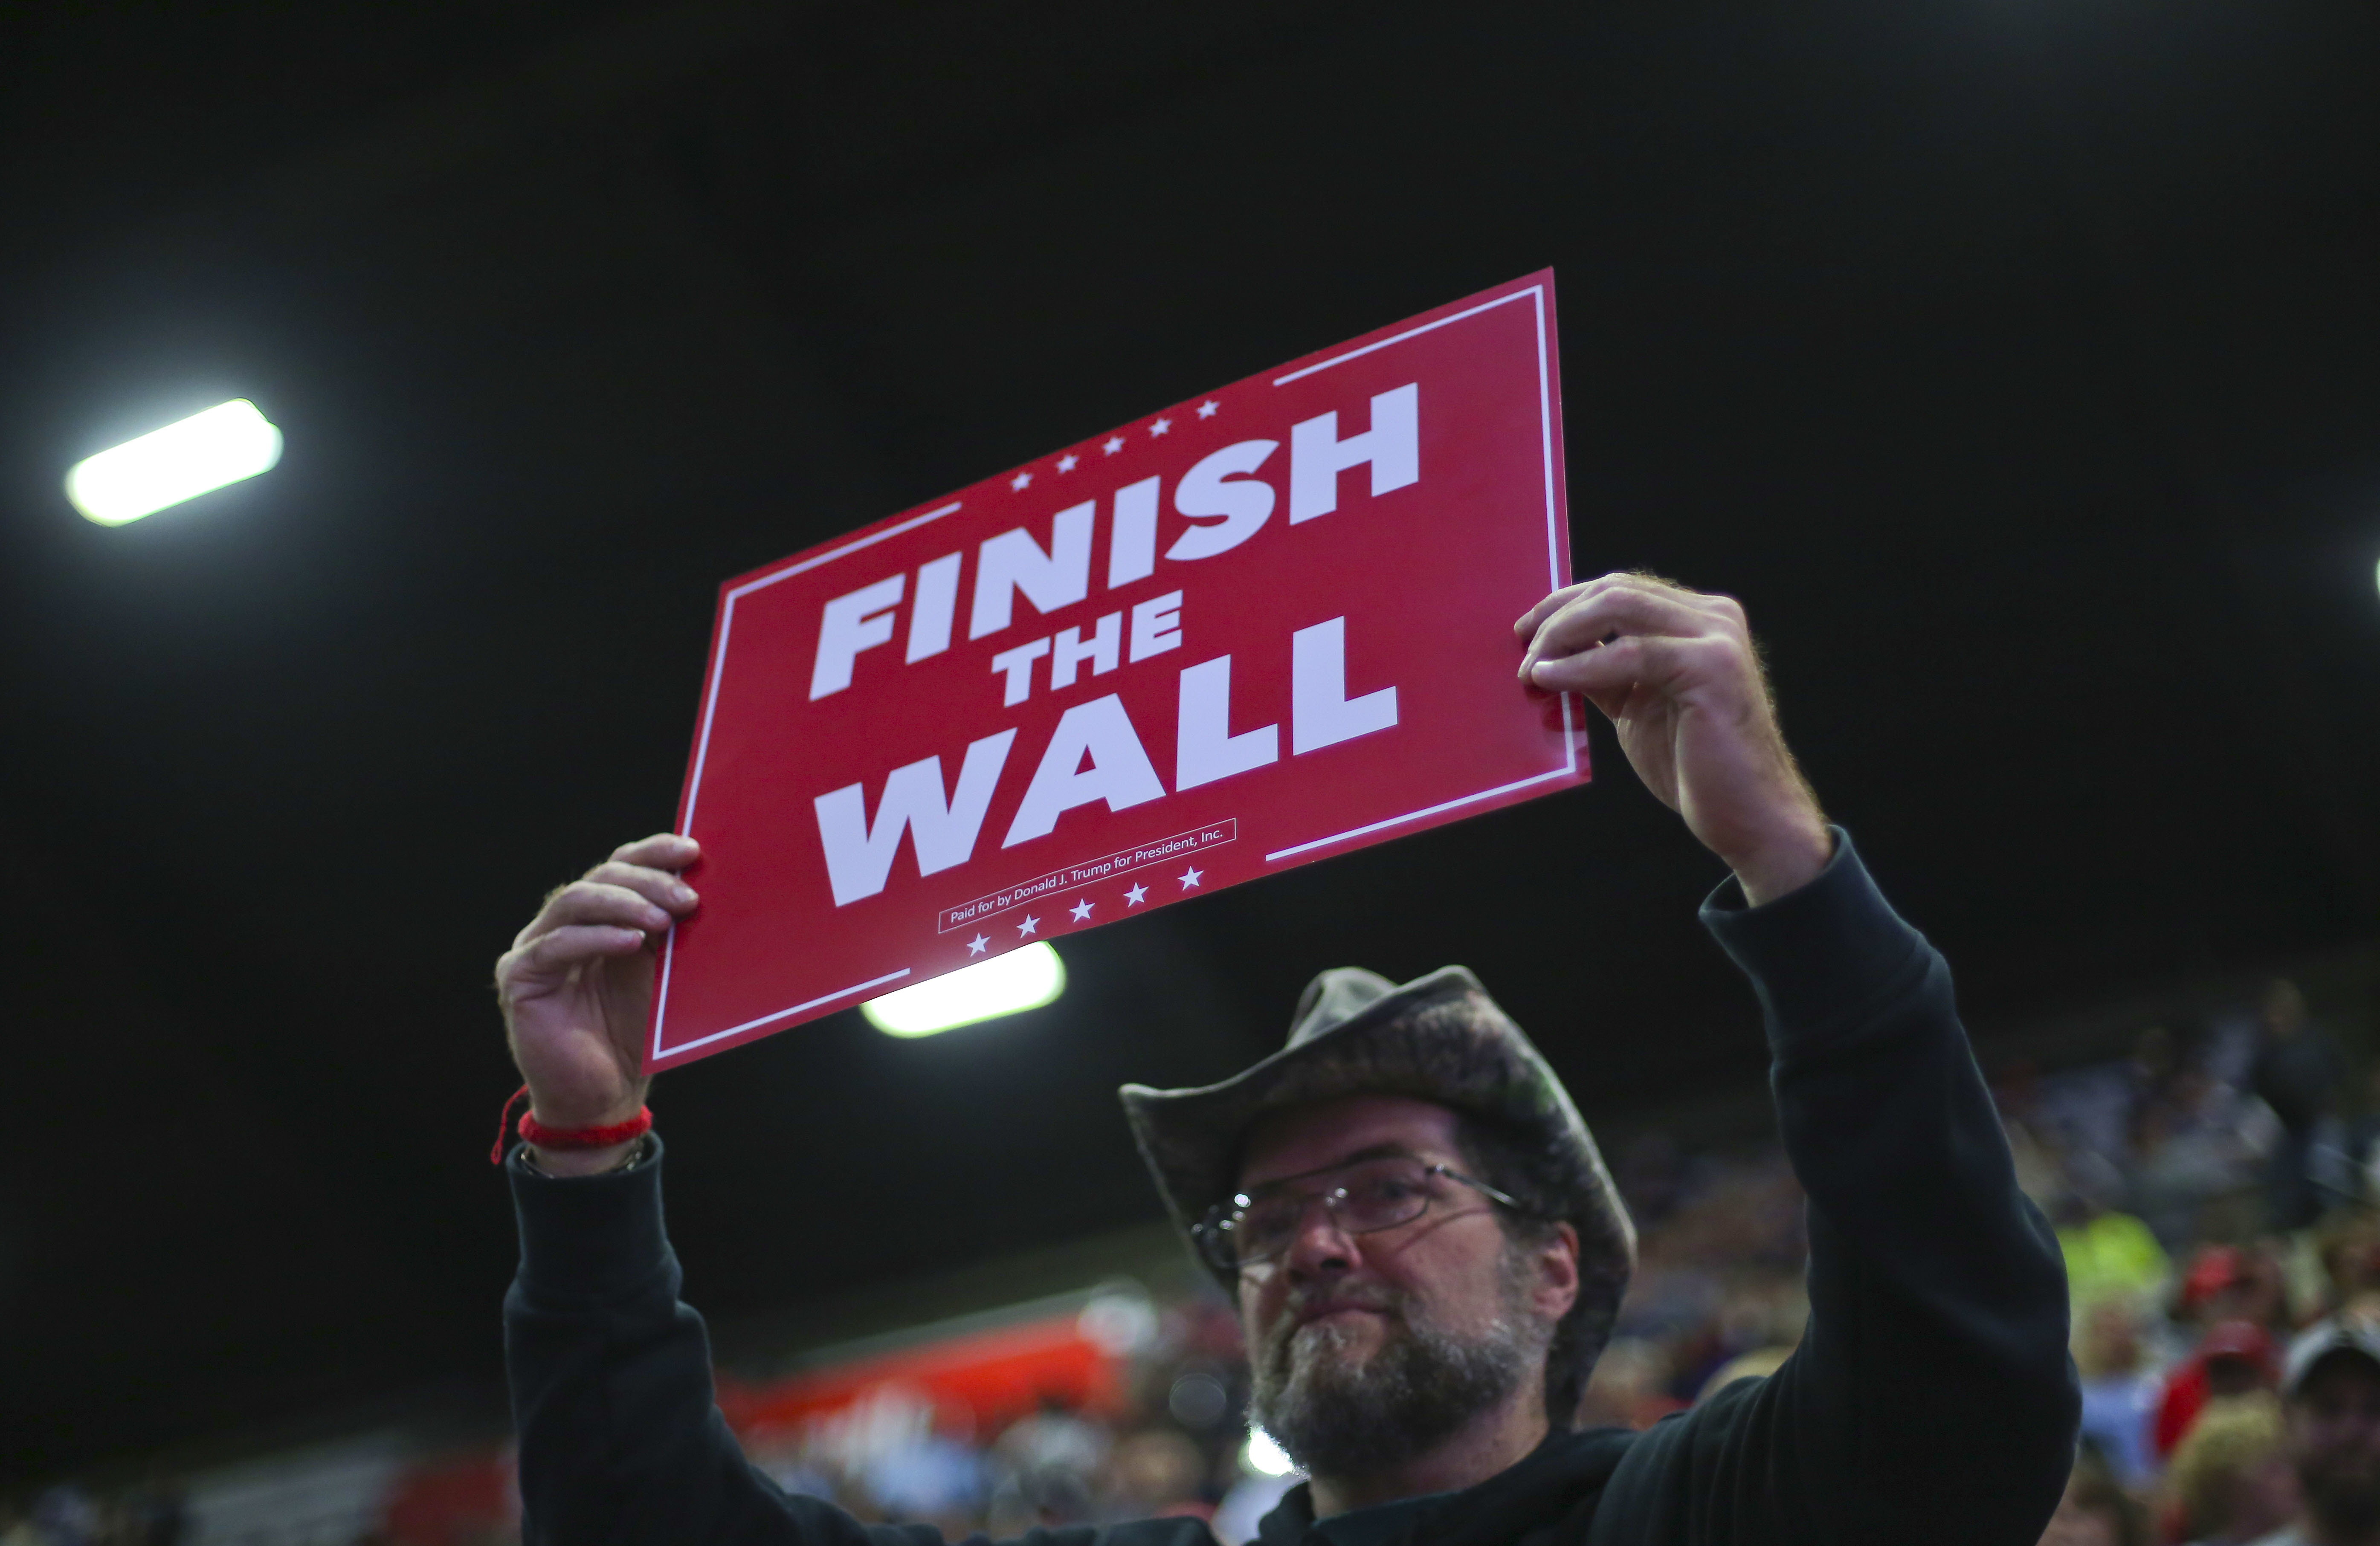 Environmentalists file 3rd lawsuit over Trump wall plans